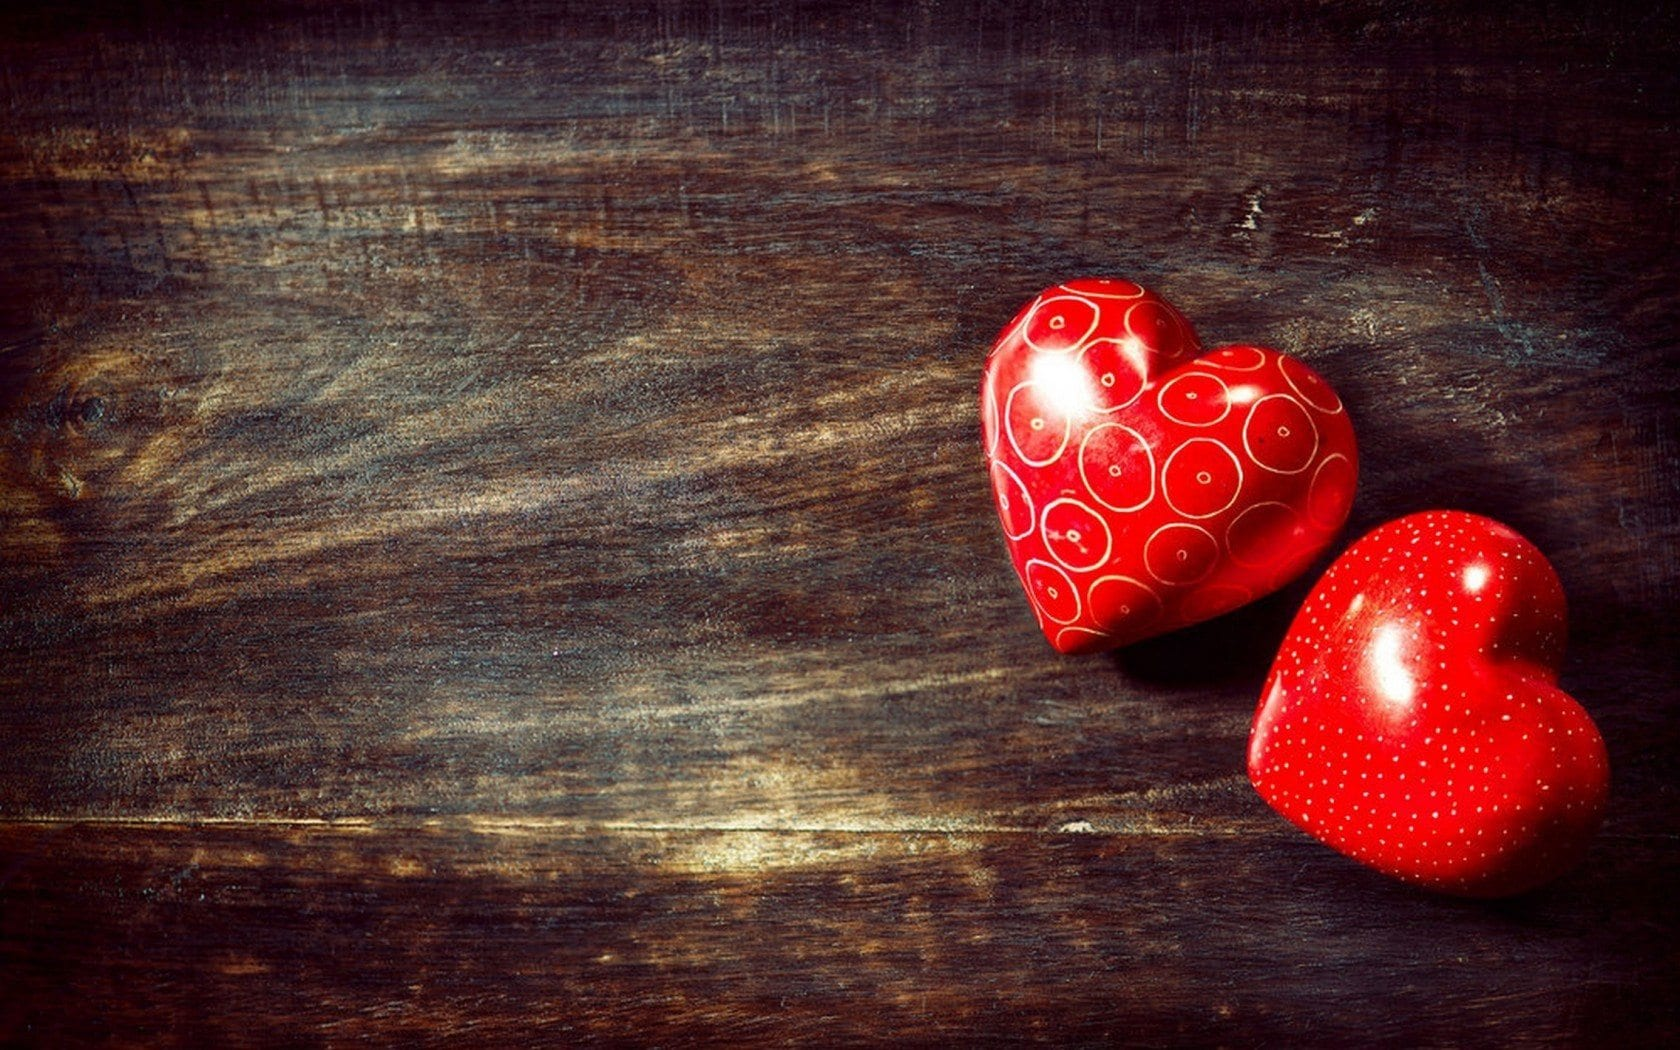 Love Wallpaper Hd 2012 : Love Images / Love HD Wallpaper